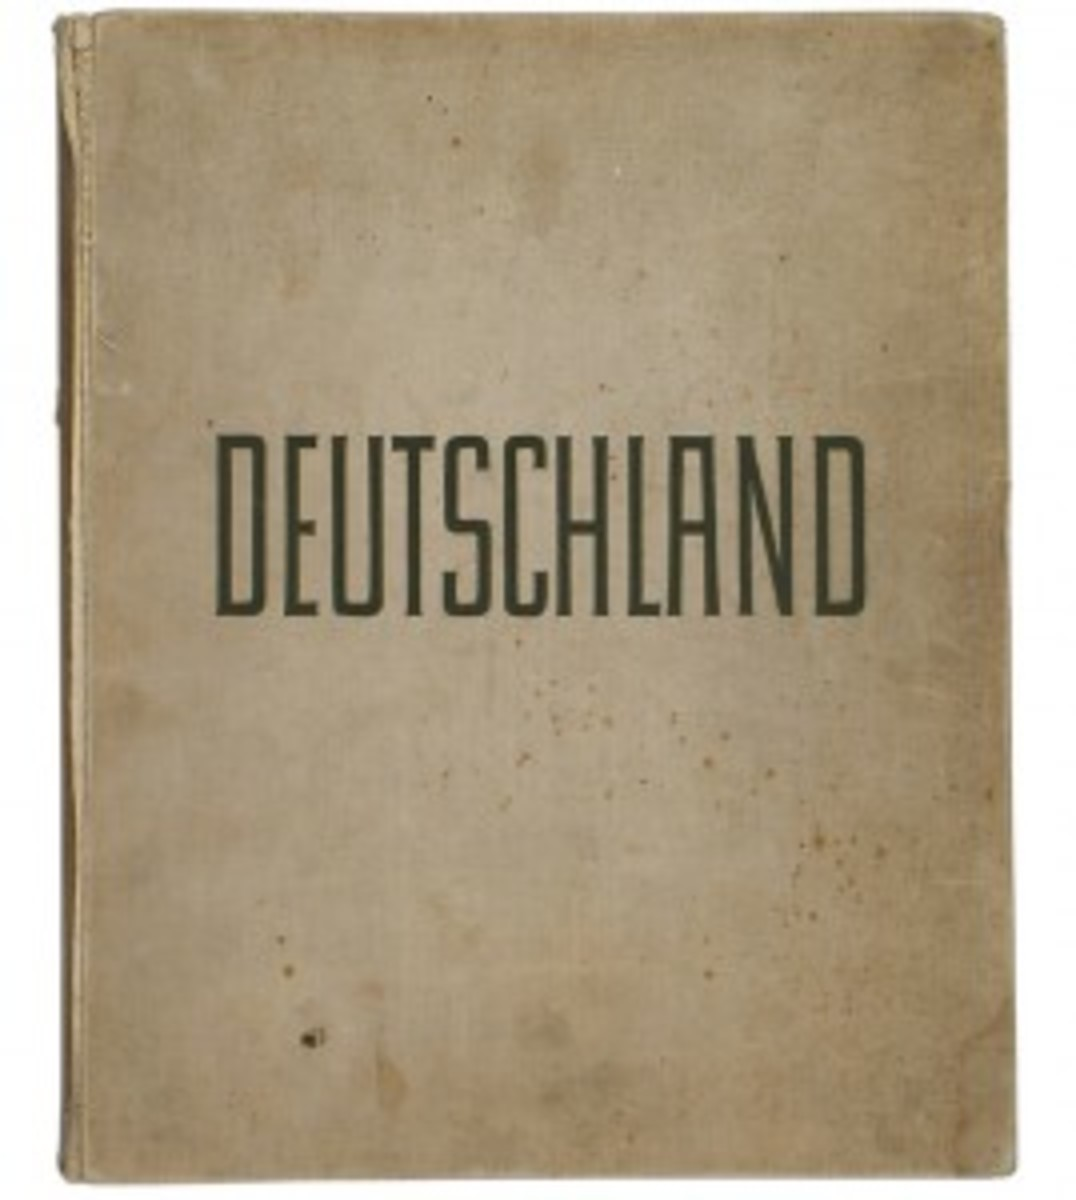 Adolf Hitler's personal proof copy of the large-format pictorial book Deutschland ($2,473).